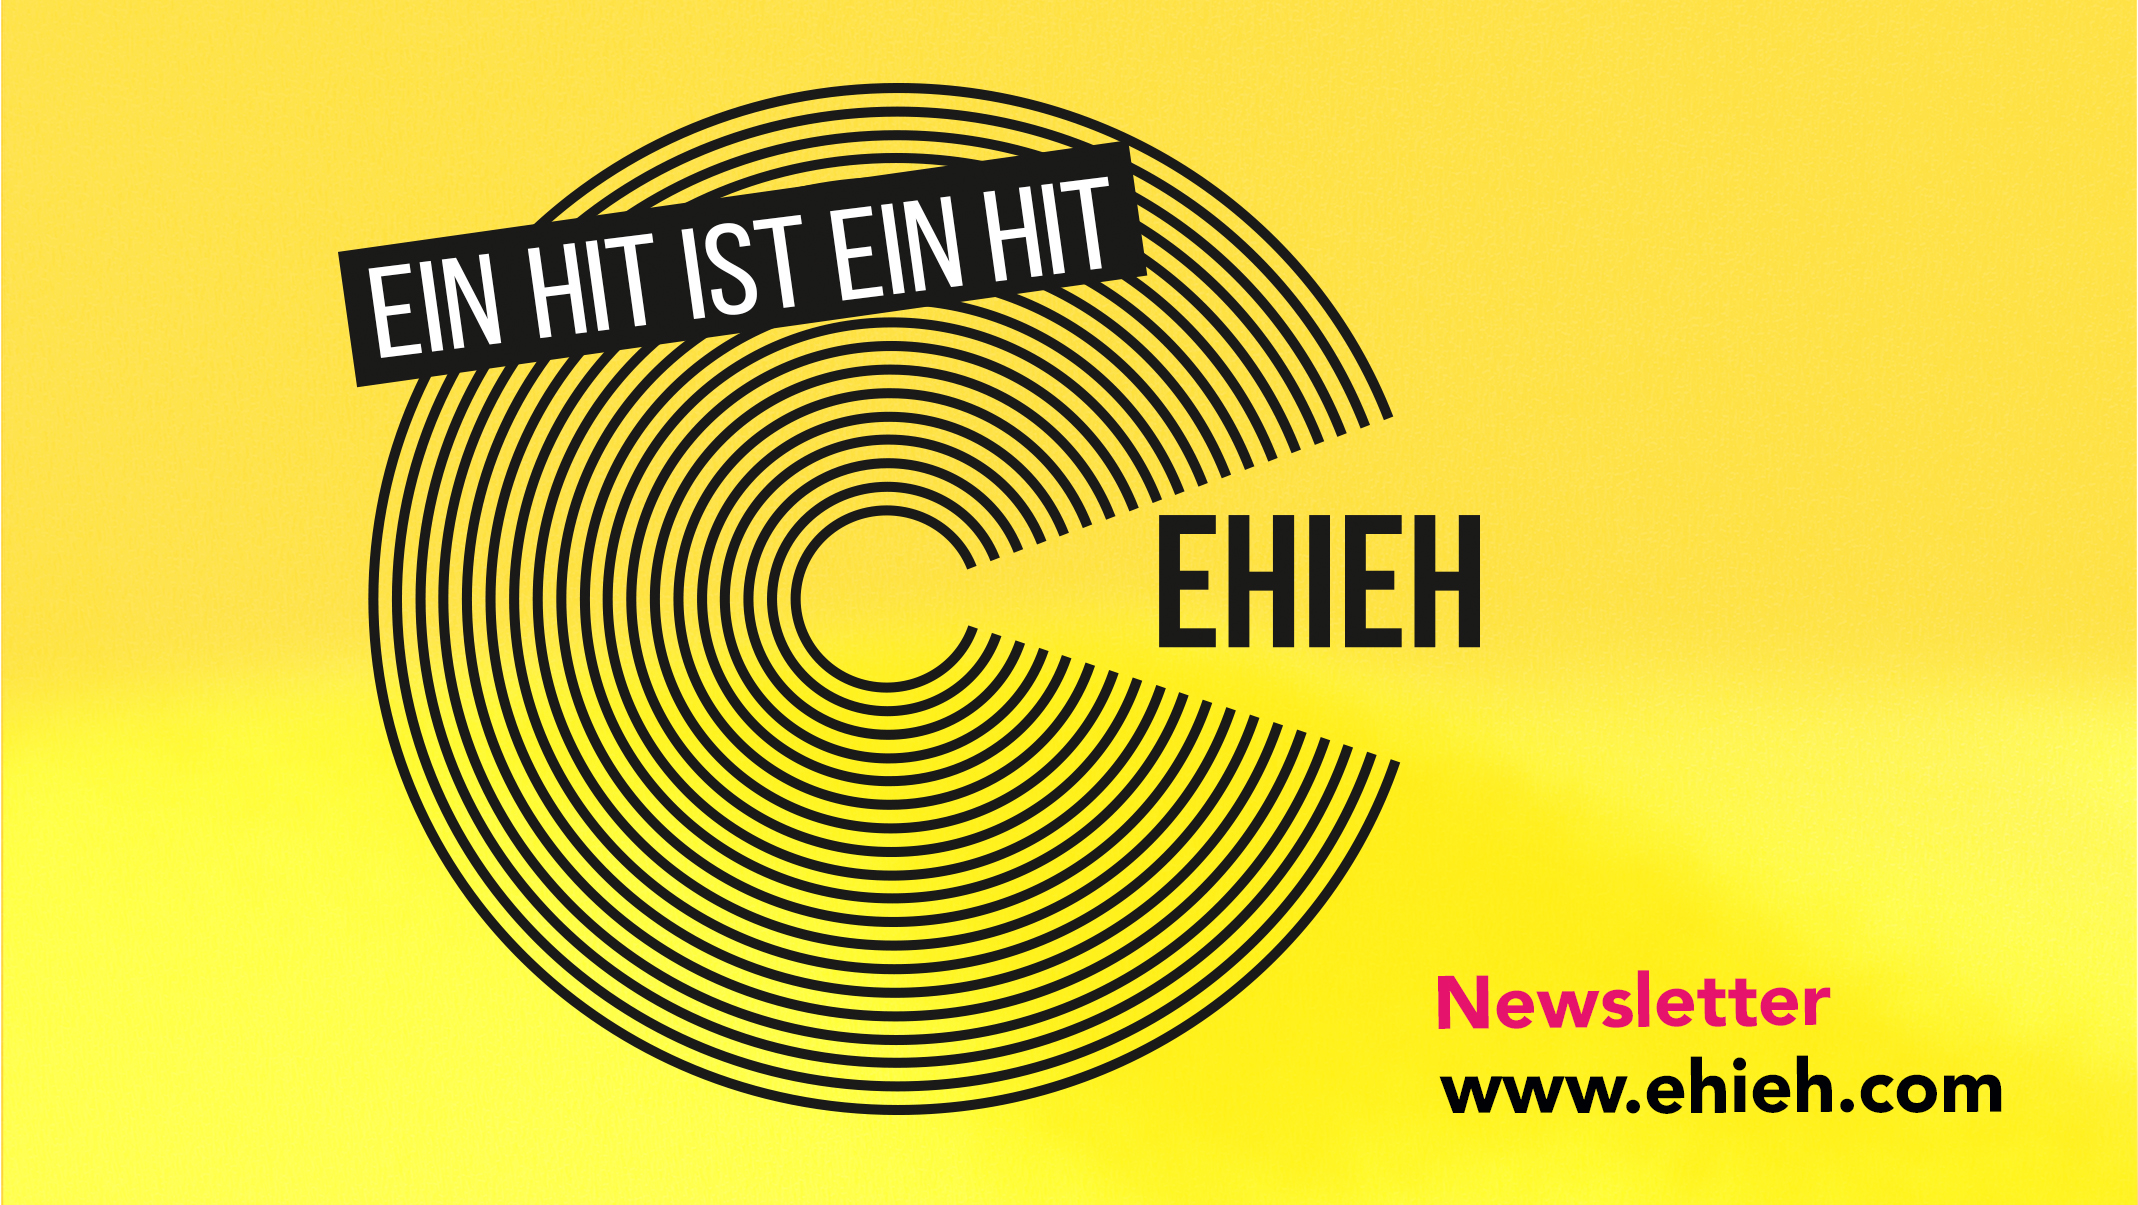 EHIEH_pop_newsletter